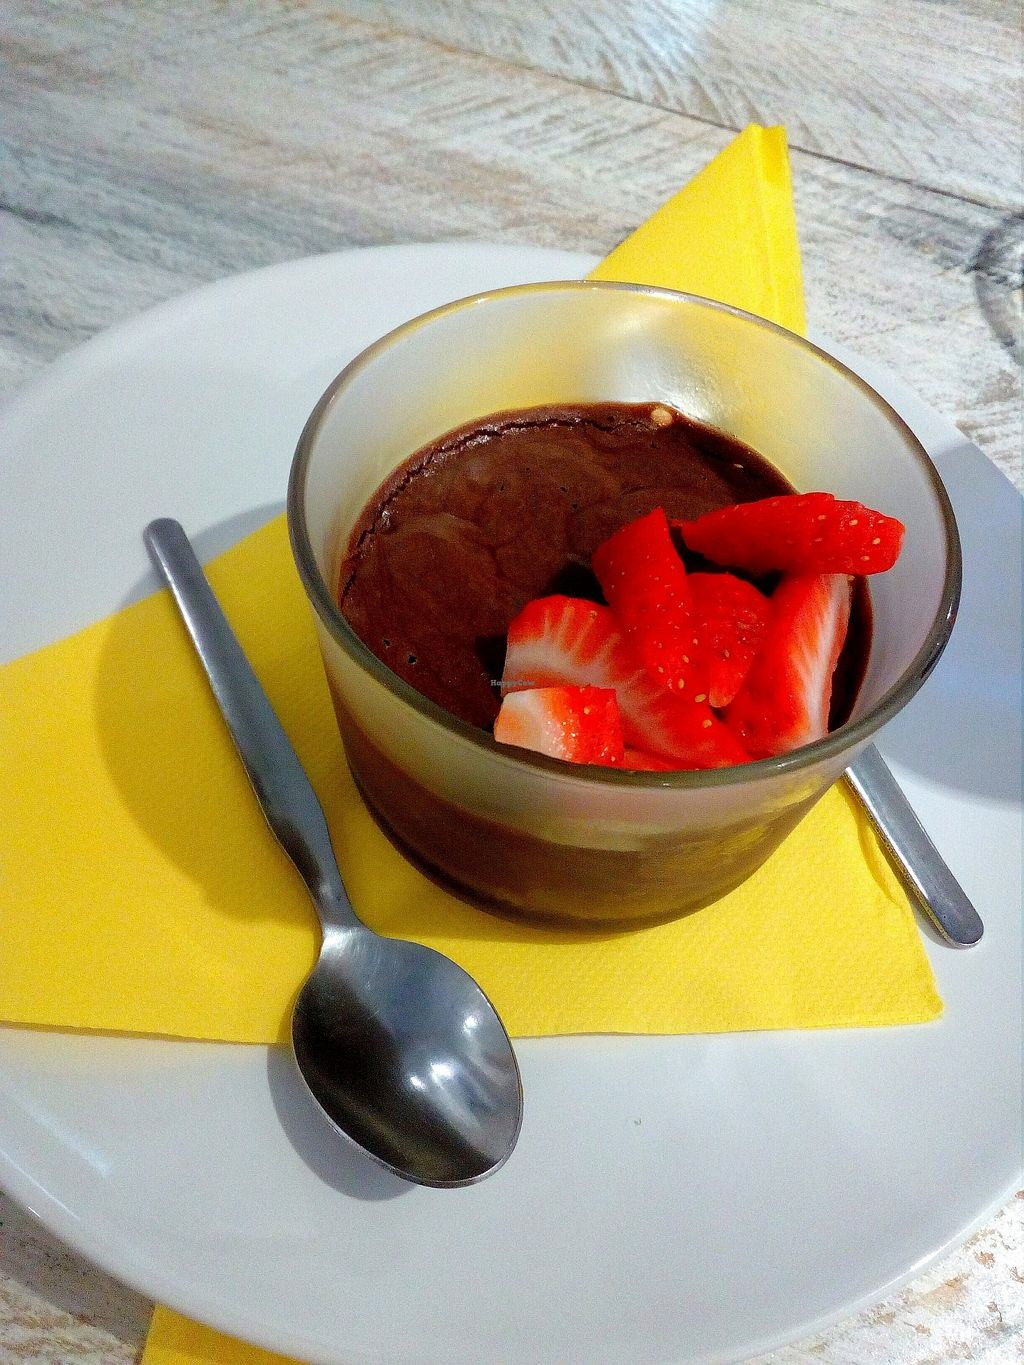 """Photo of Vegan Ibiza  by <a href=""""/members/profile/wyrd"""">wyrd</a> <br/>Chocolate mousse <br/> August 24, 2017  - <a href='/contact/abuse/image/93478/296835'>Report</a>"""